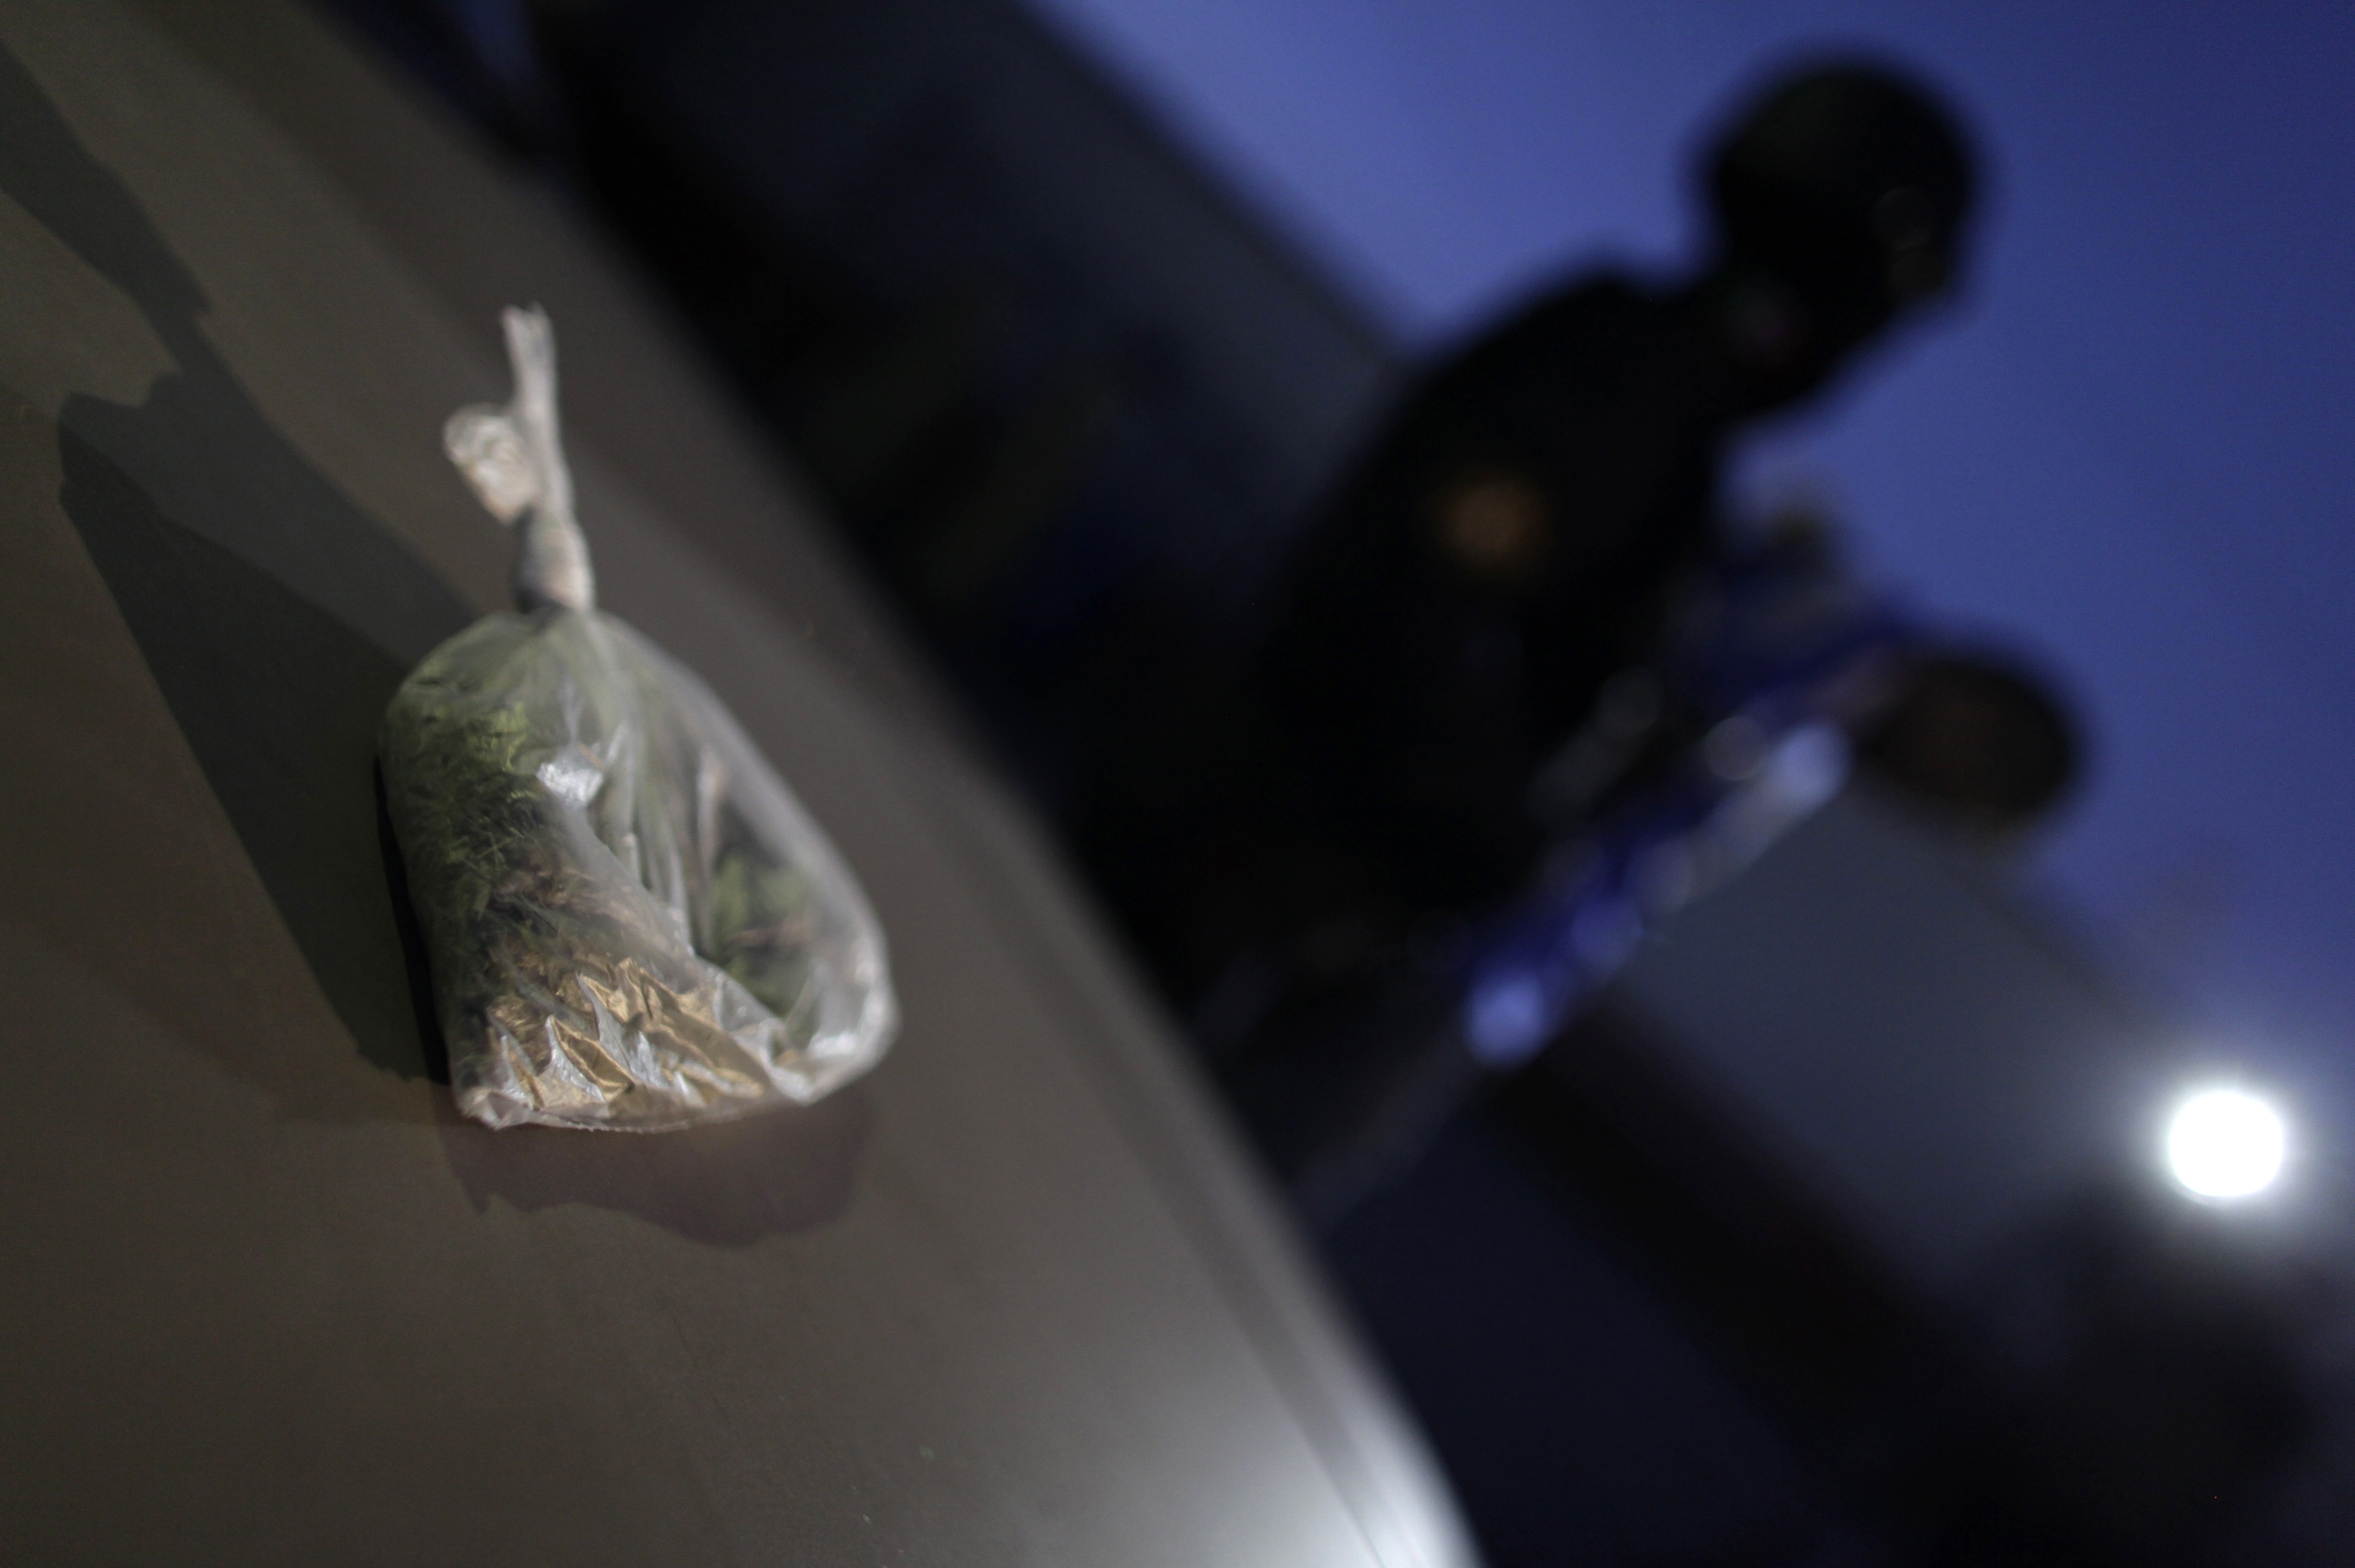 A bag of marijuana is on display as suspects are presented to the media after their arrest in Monterrey December 30, 2011. The two suspects were arrested after police found a small bag with marijuana valued at approximately 500 pesos ($36) in their car during a routine check, according to local media. (MEXICO - Tags: CRIME LAW DRUGS SOCIETY) - GM1E7CV15O601